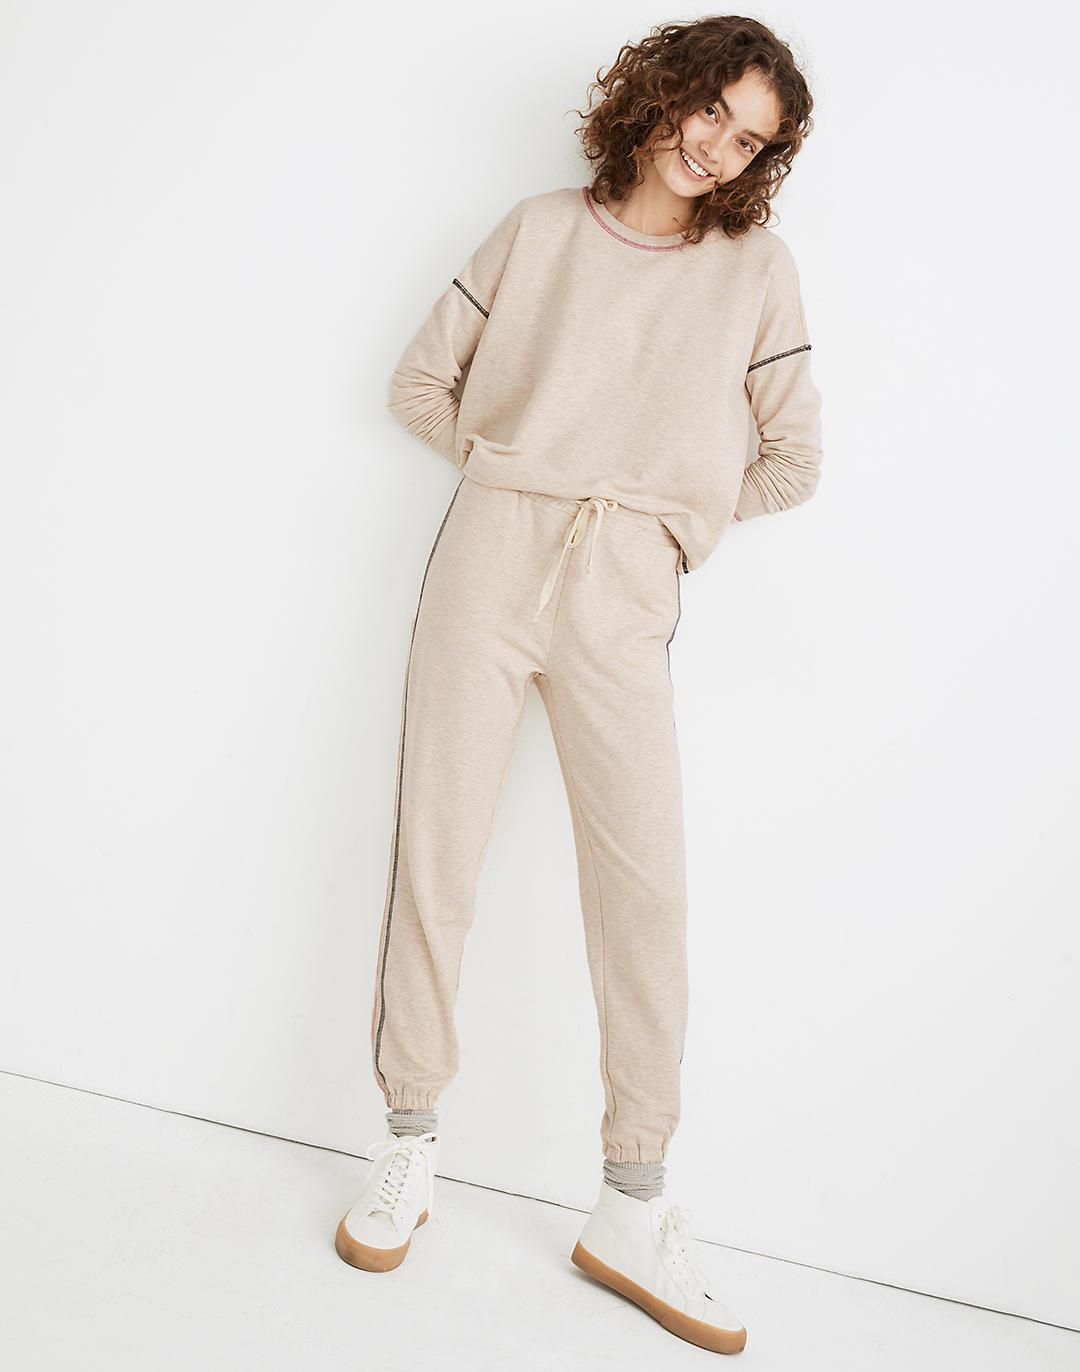 MWL Superbrushed Contrast-Stitched Easygoing Sweatpants 1